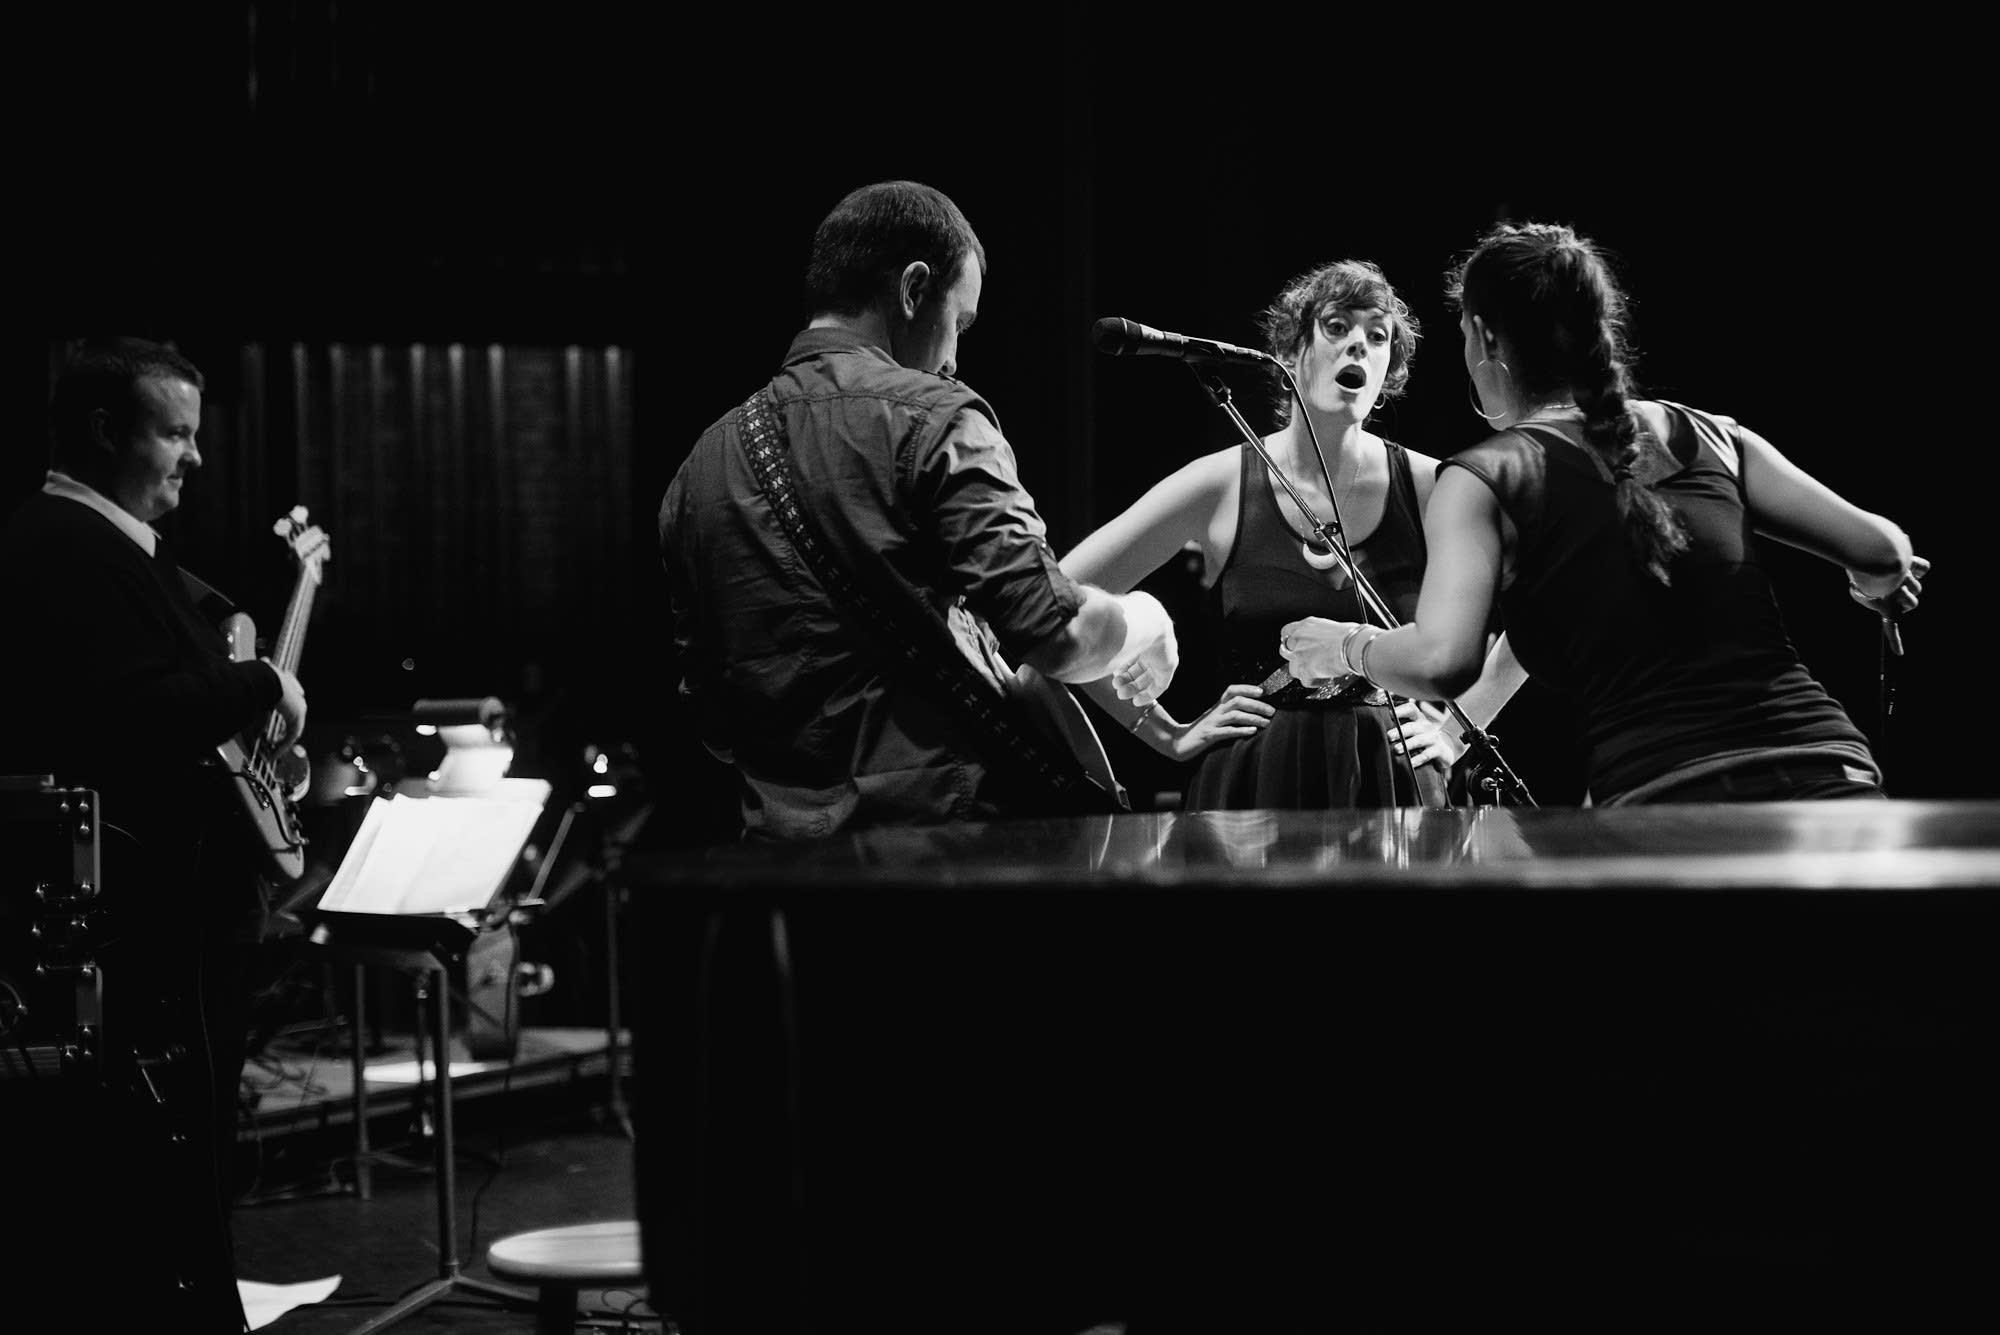 Dessa and her band